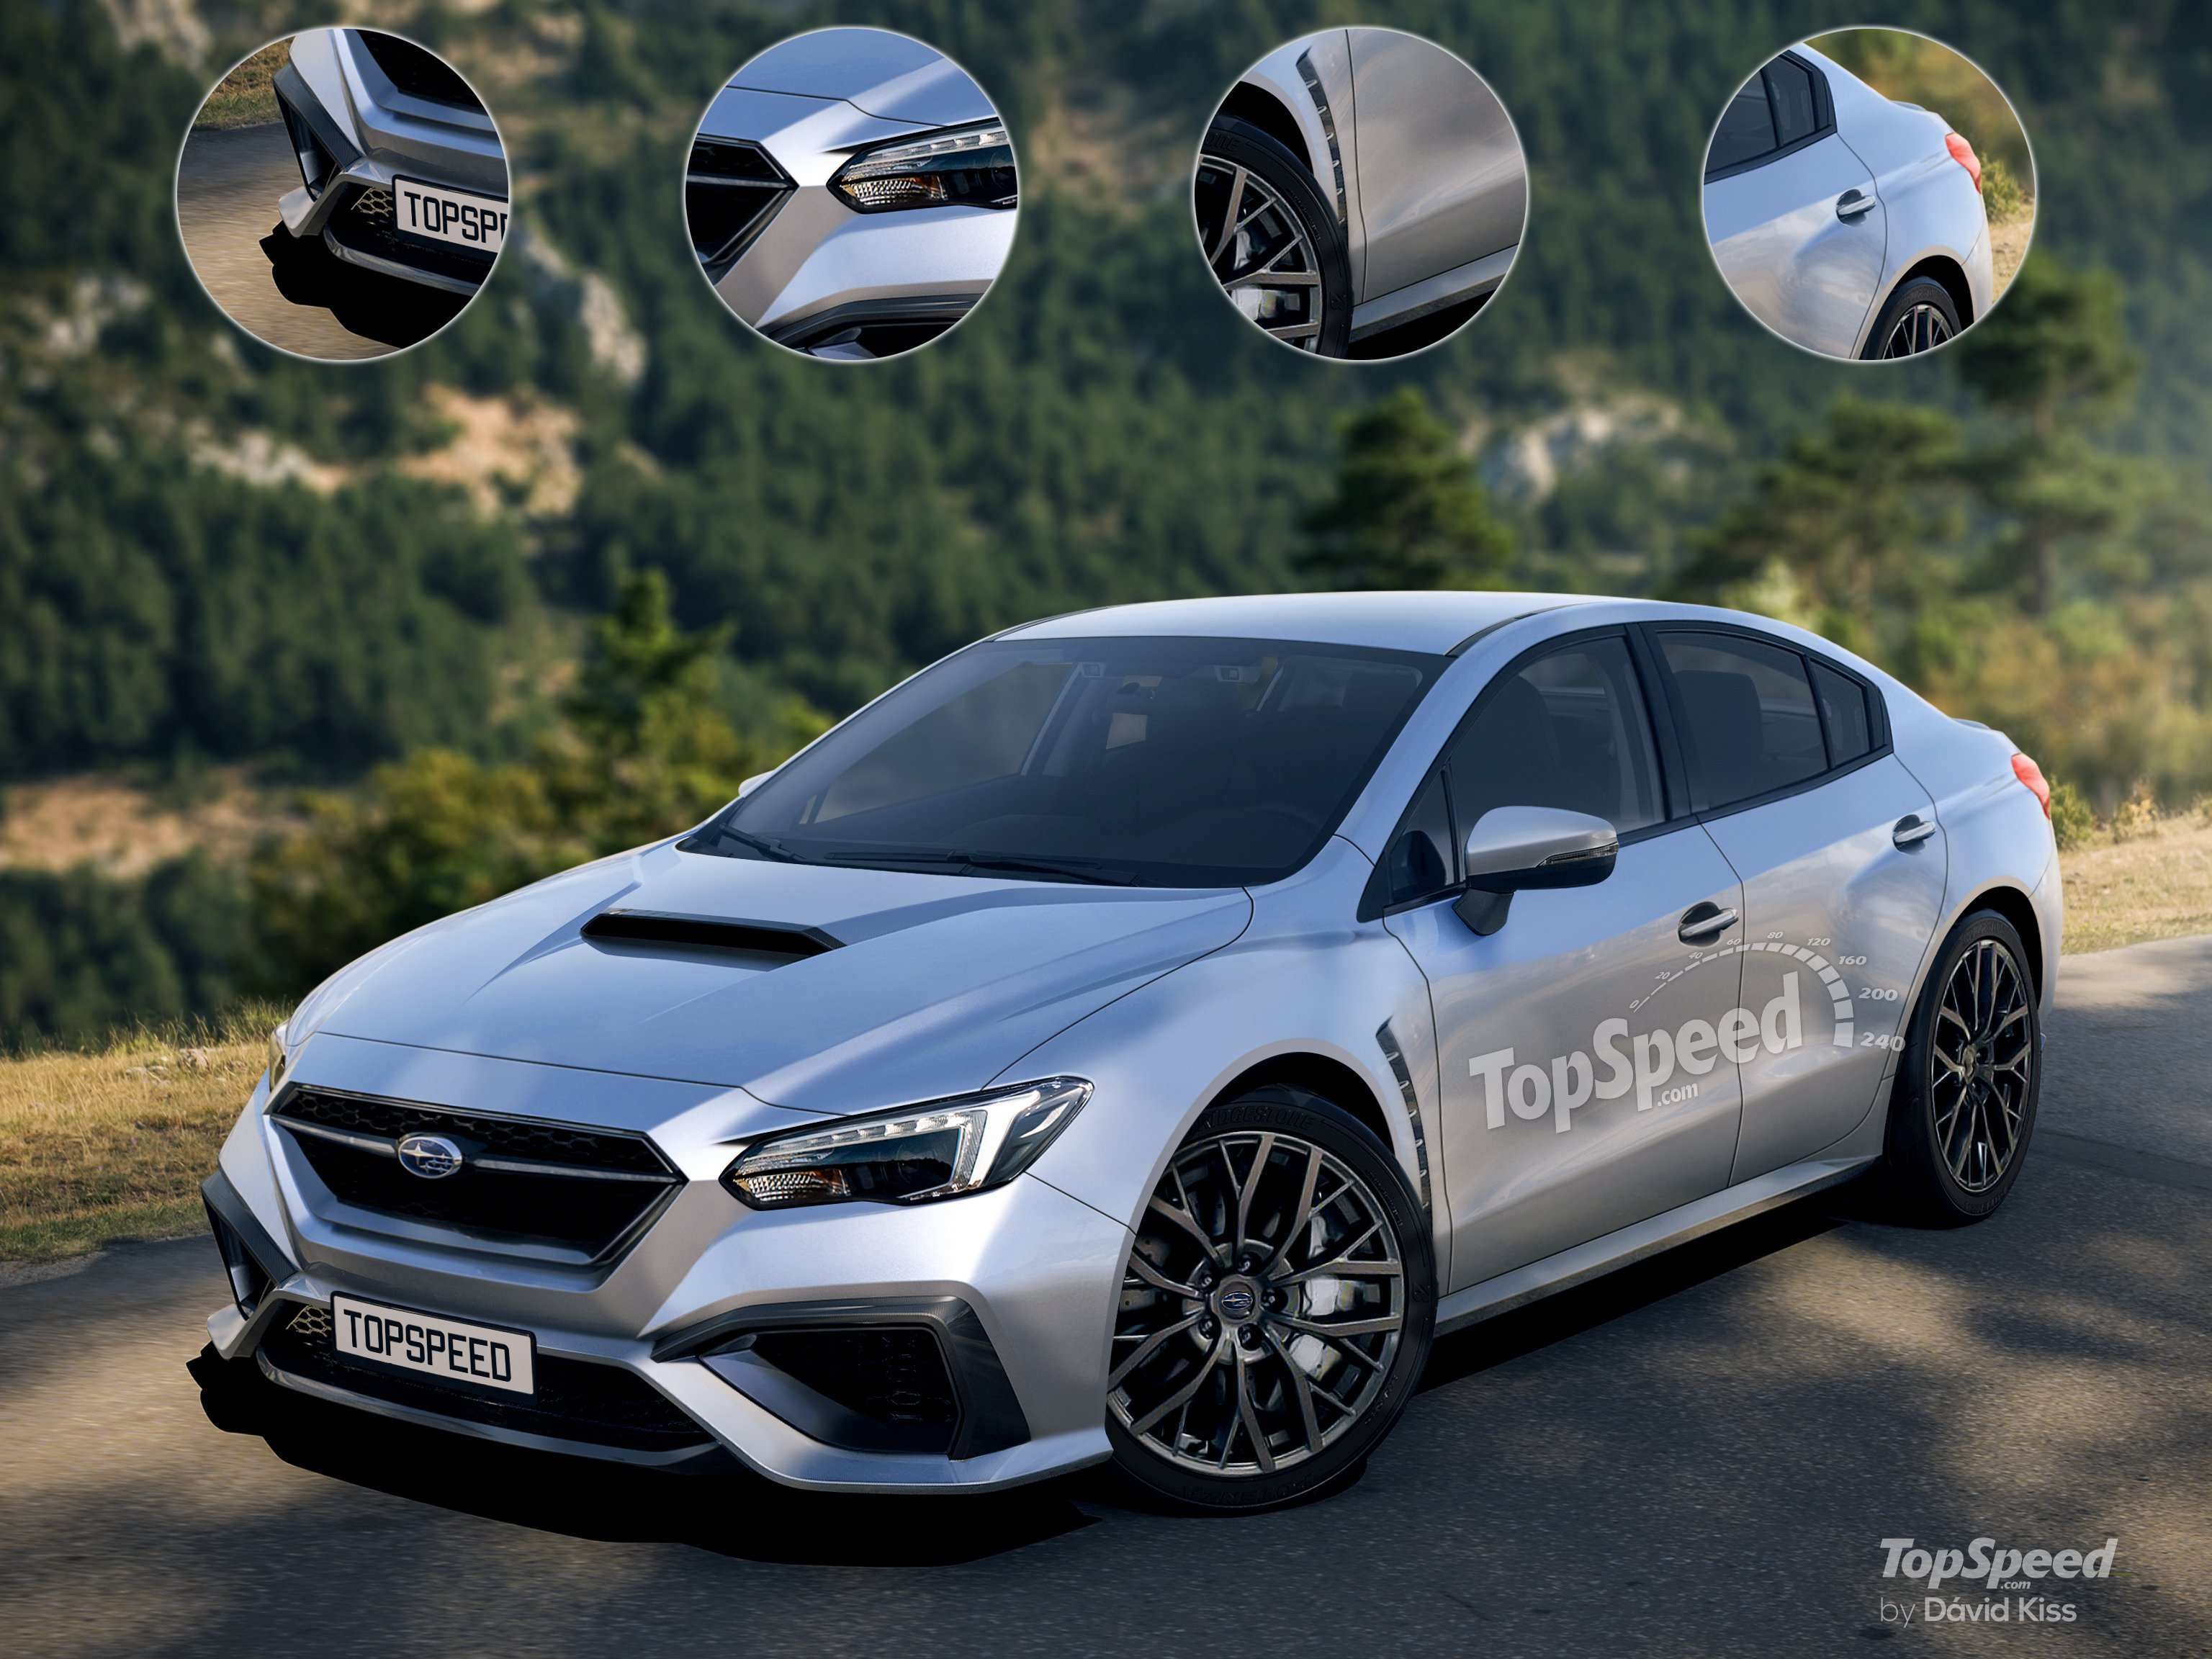 86 The Best Subaru Impreza 2020 Refresh Release Date And Concept